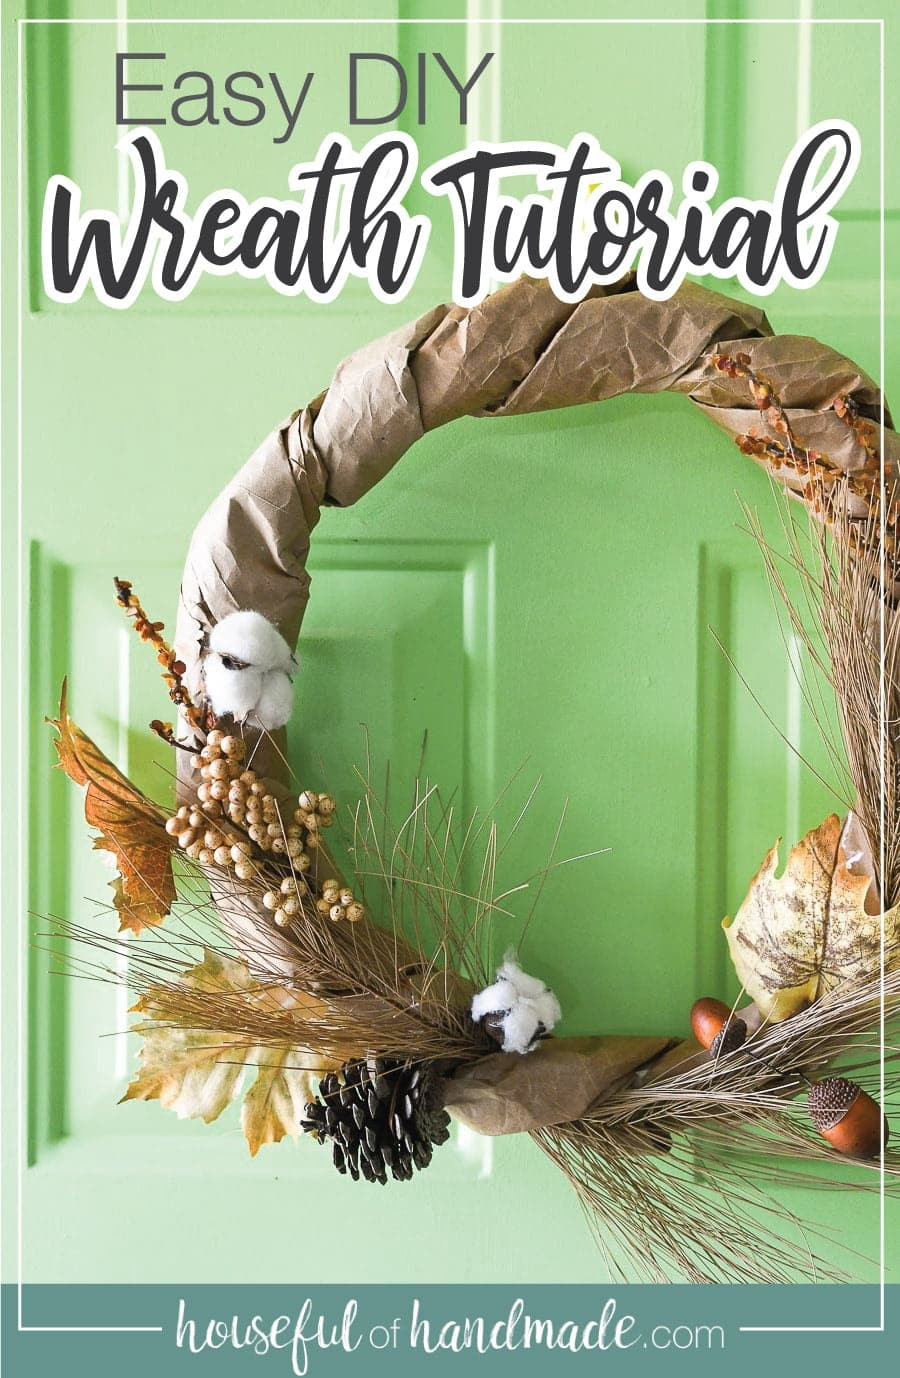 Easy DIY neutral wreath tutorial with picture of wreath on front door.